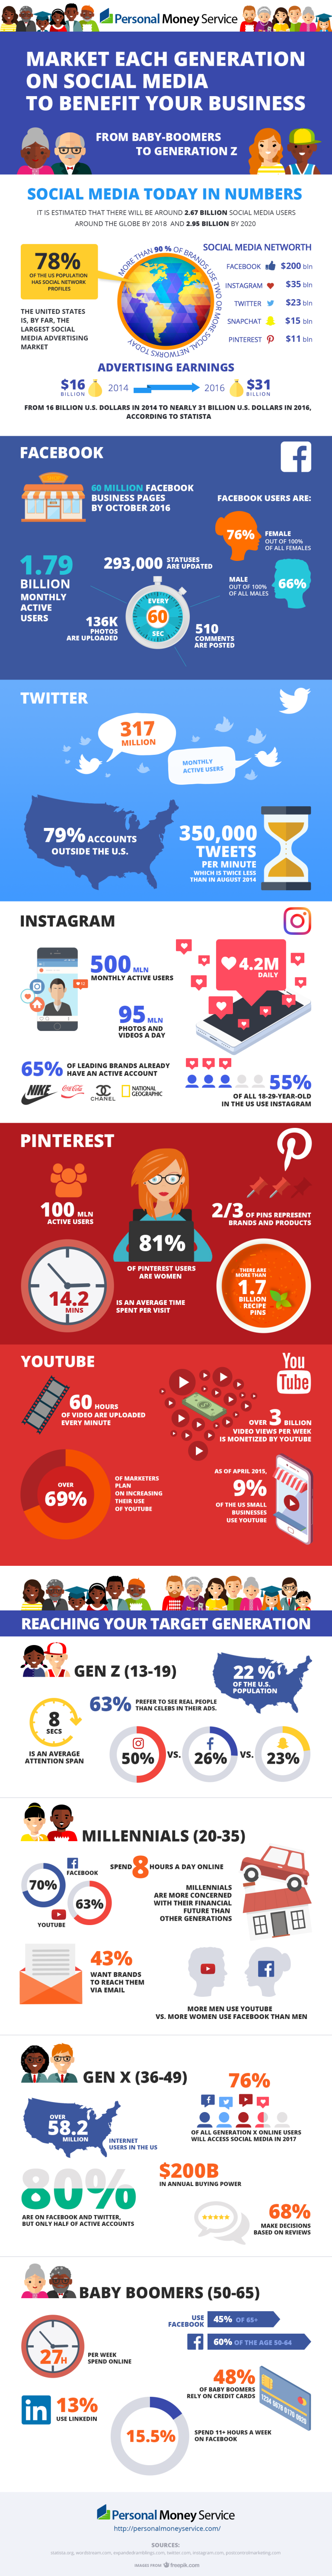 Social Media Usage By Age (Infographic)